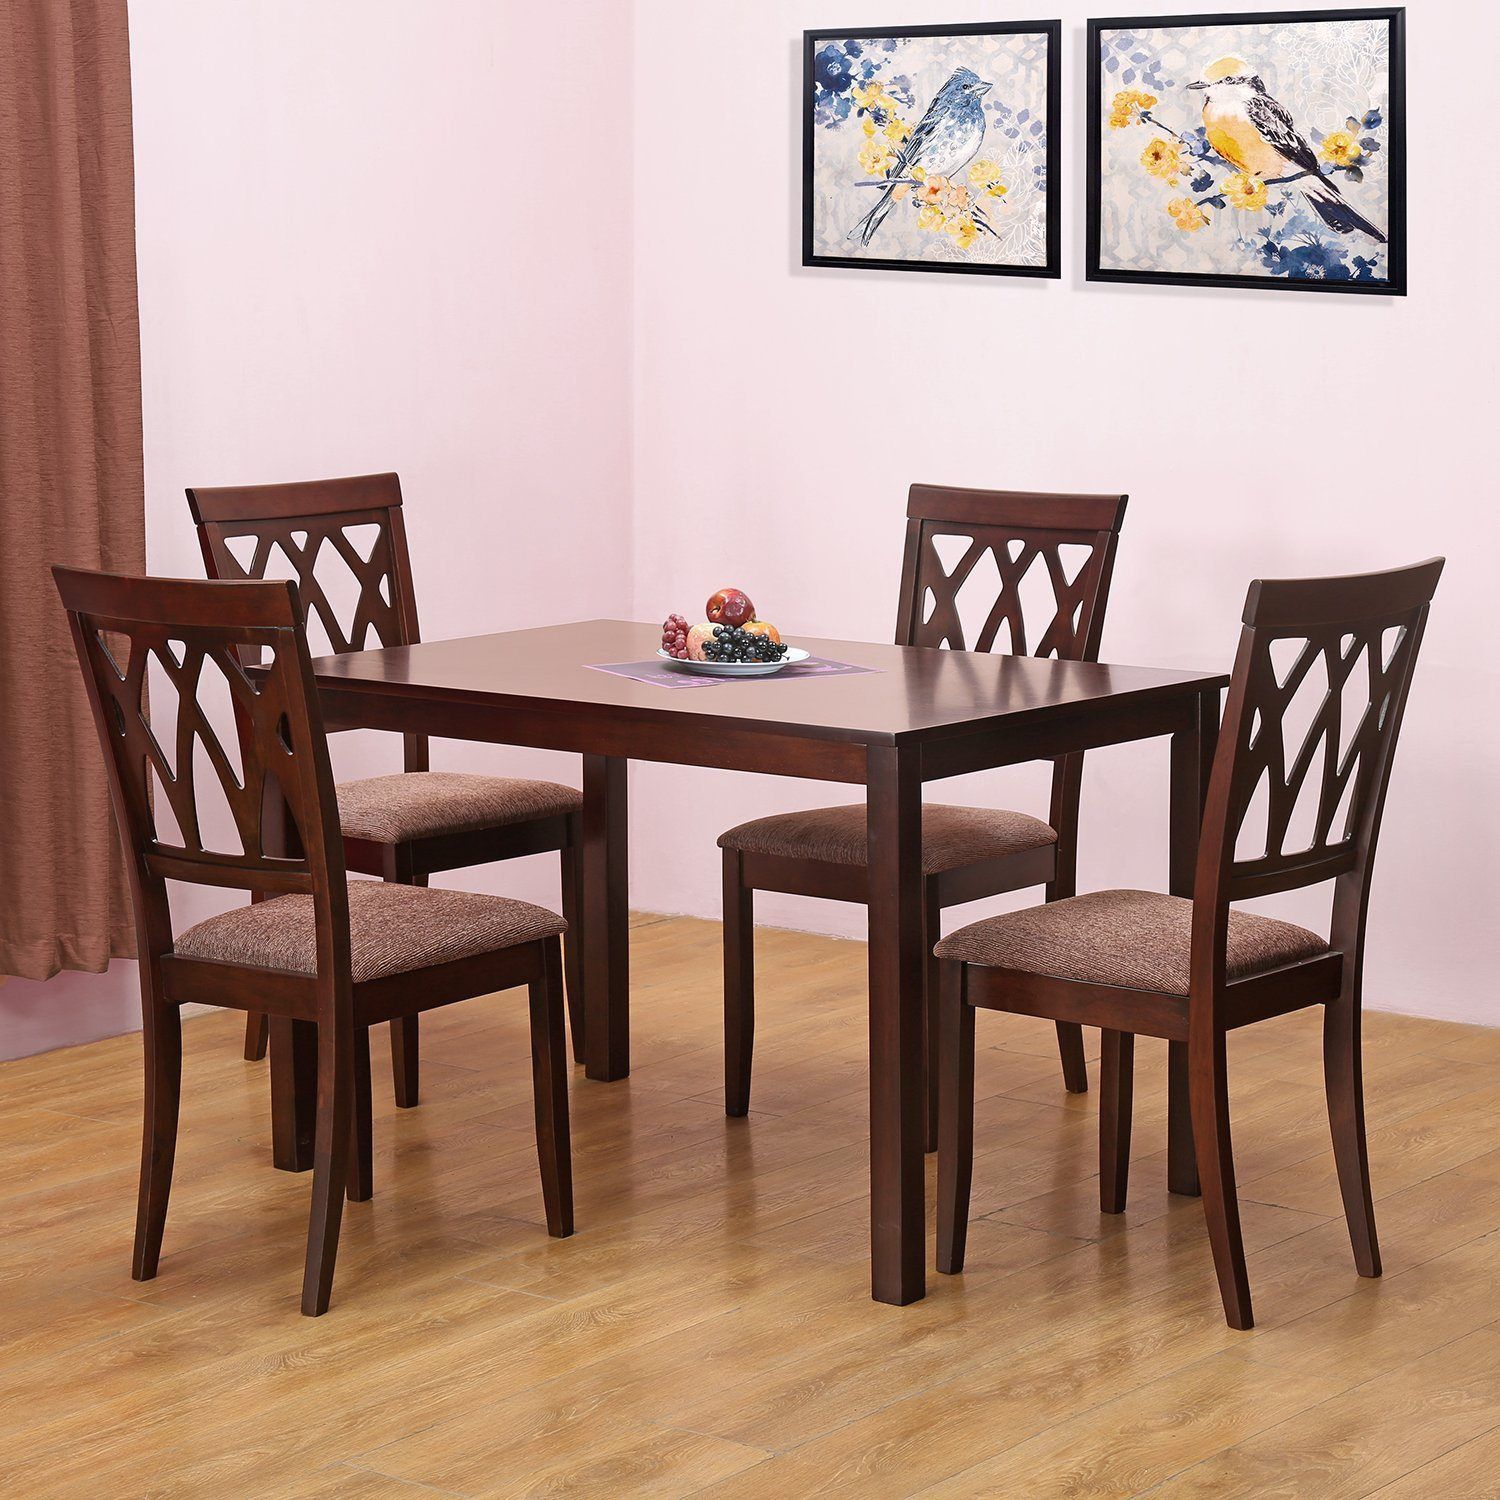 modern dining table - Finding A Proper Dining Table For A Fun And ...